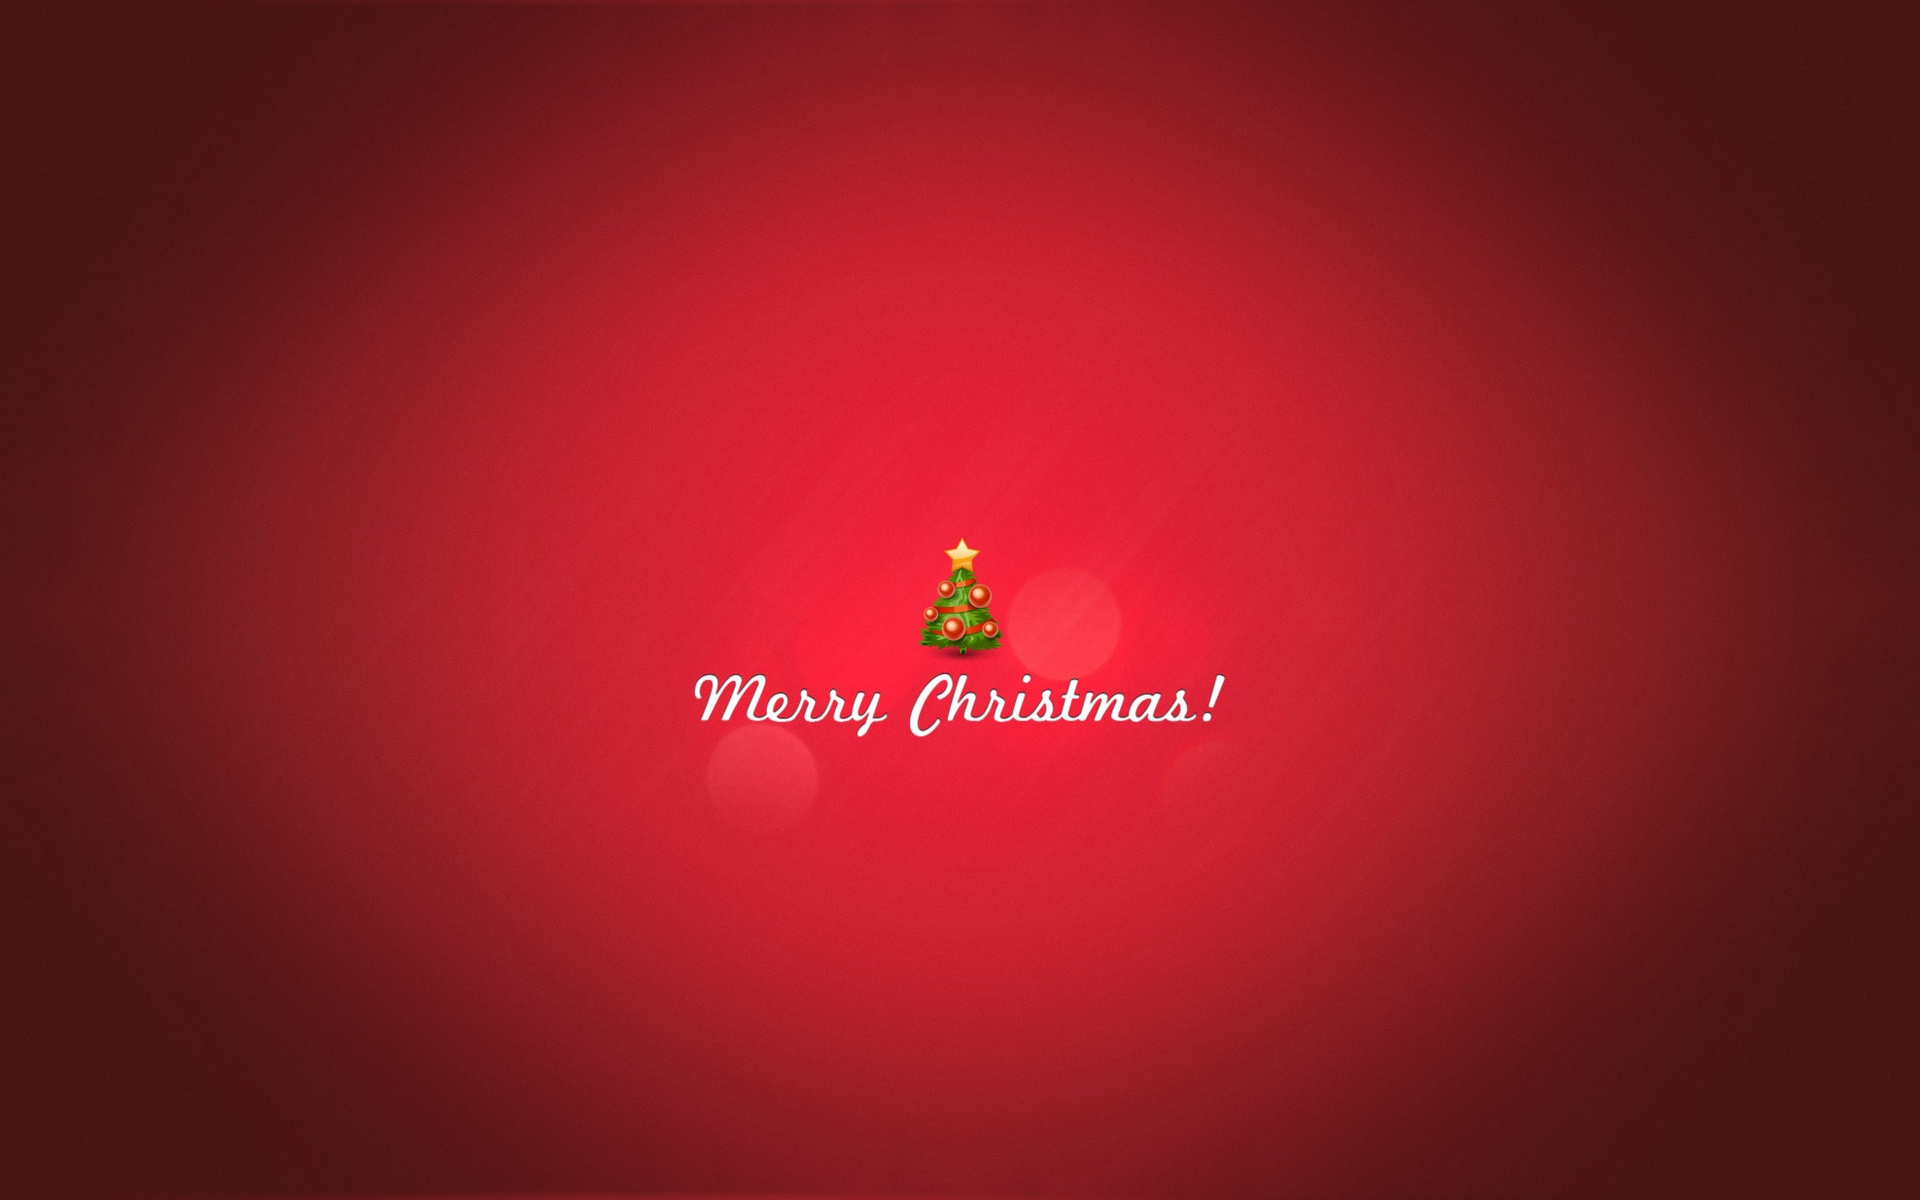 Merry Christmas Wallpaper Image Picture